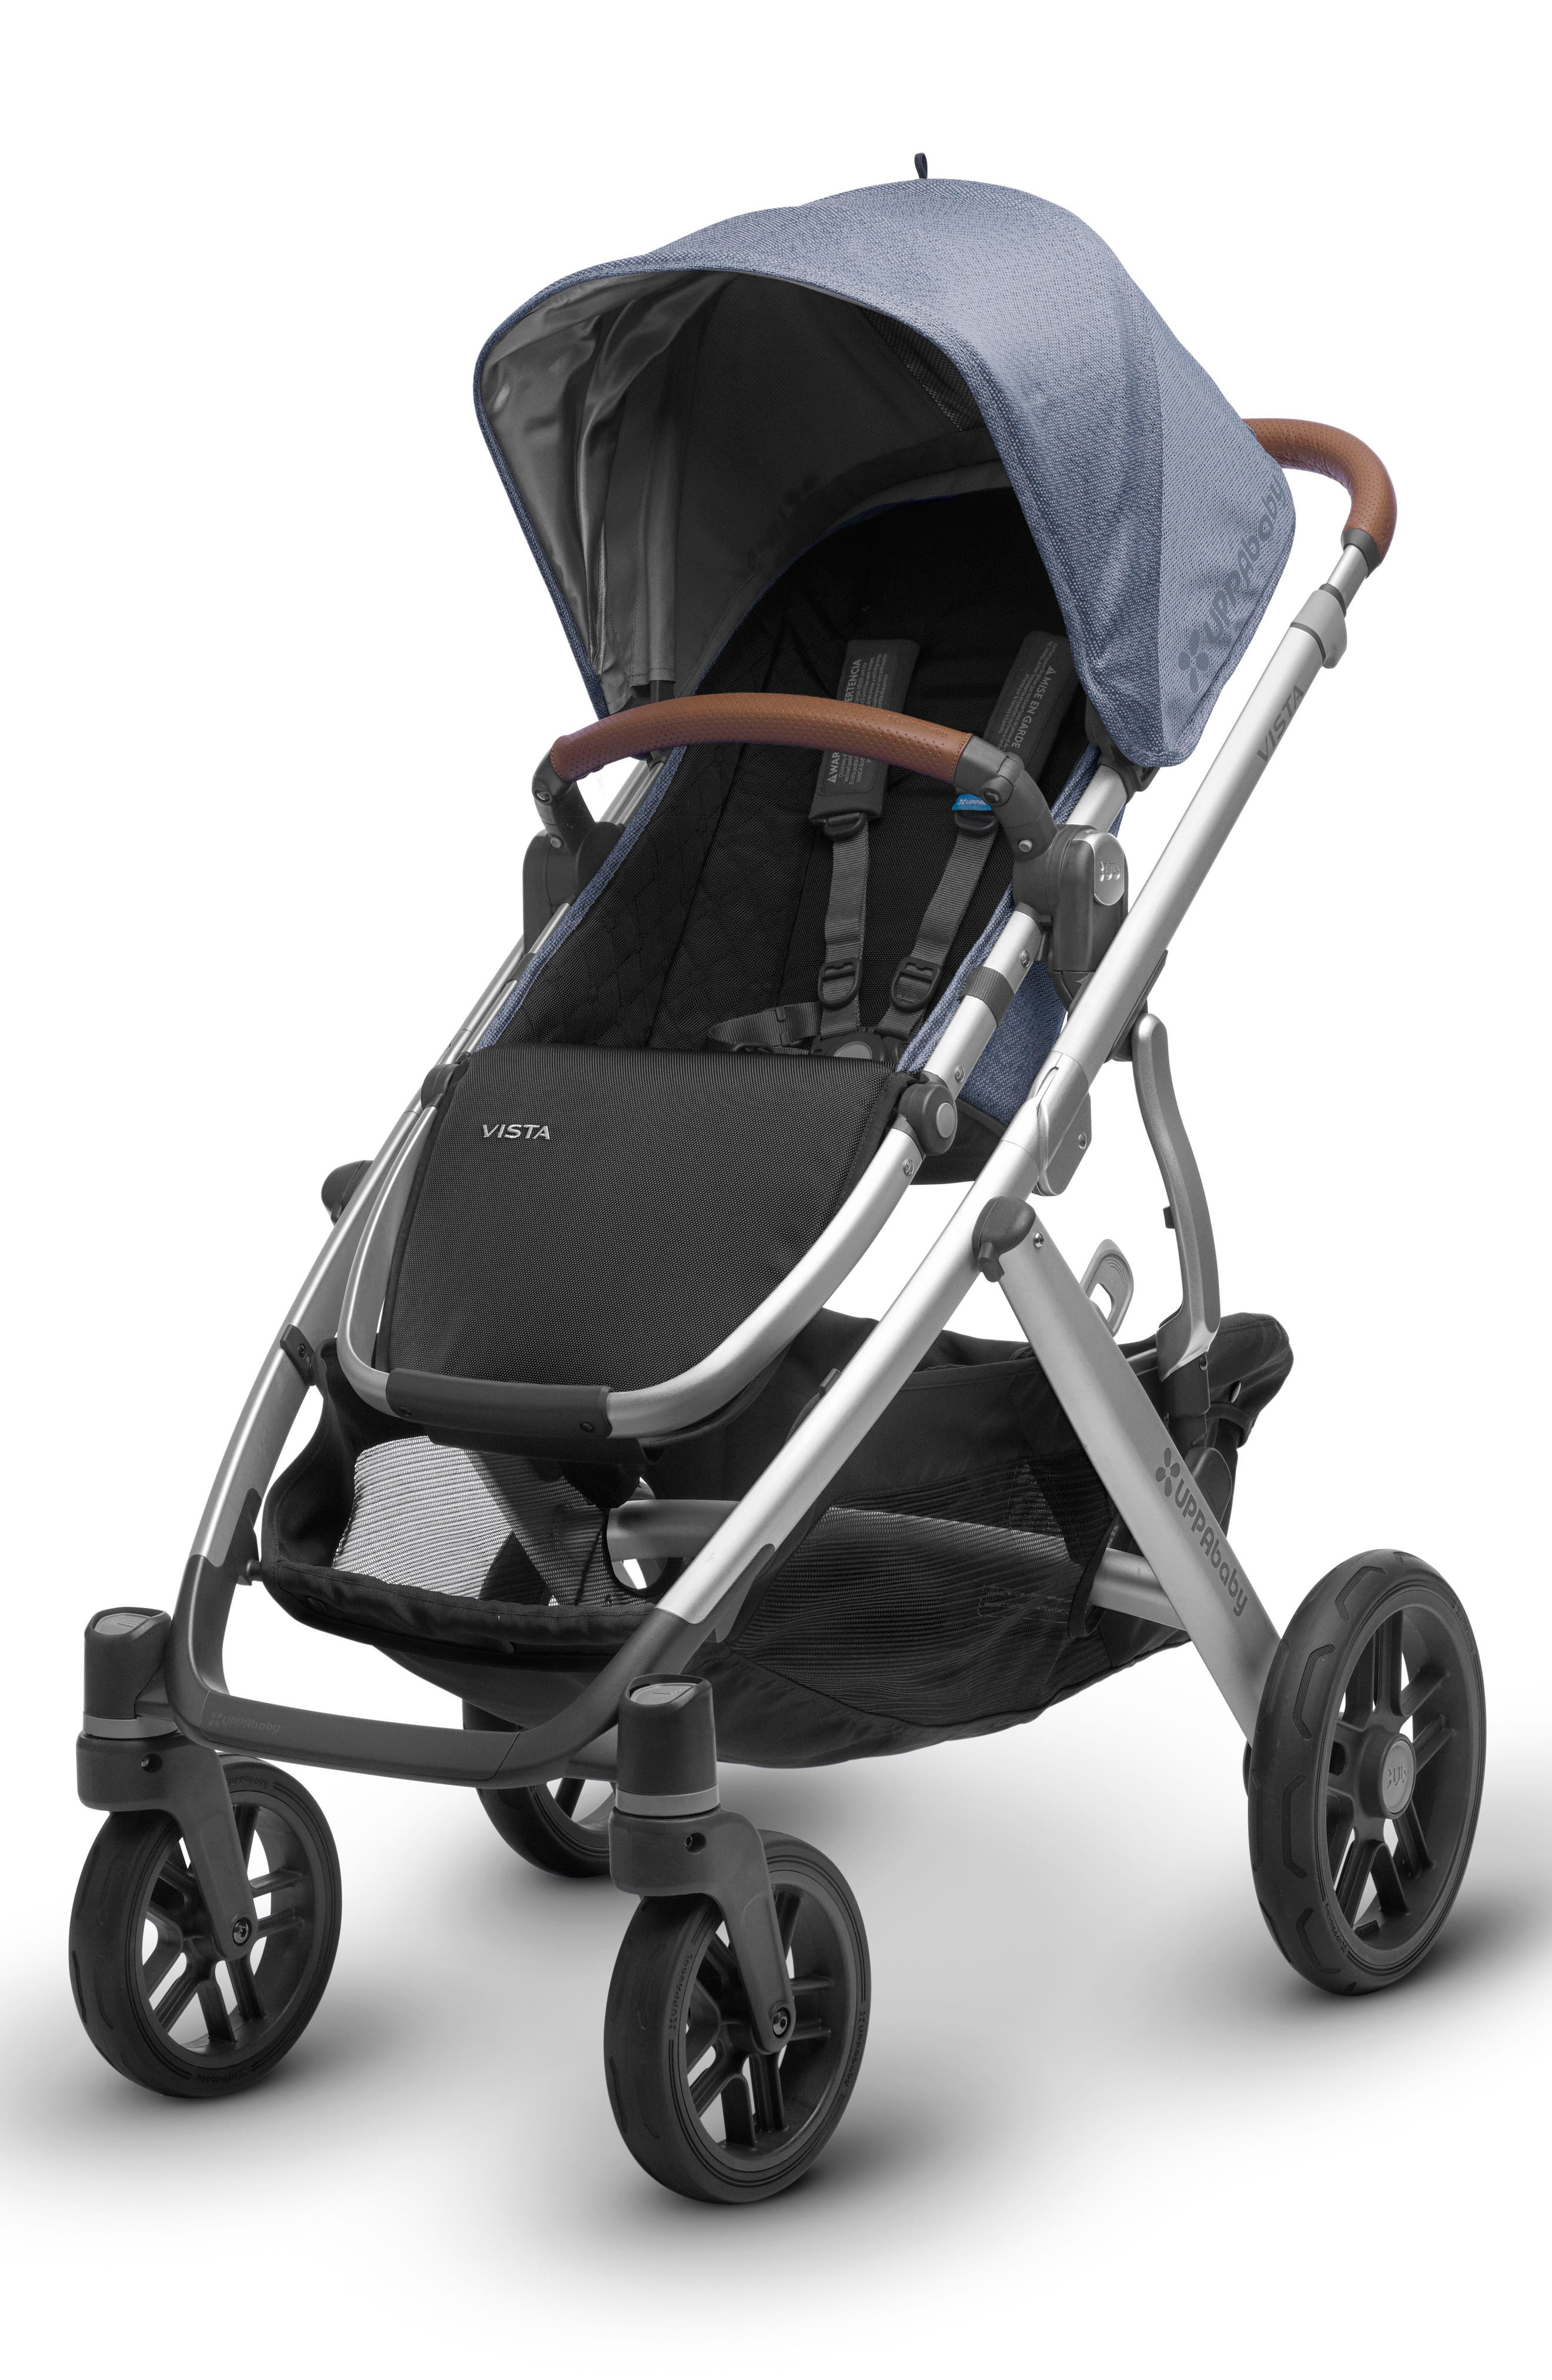 2018 VISTA Aluminum Frame Convertible Complete Stroller with Leather Trim,                             Main thumbnail 1, color,                             Henry Blue Marl/ Silver